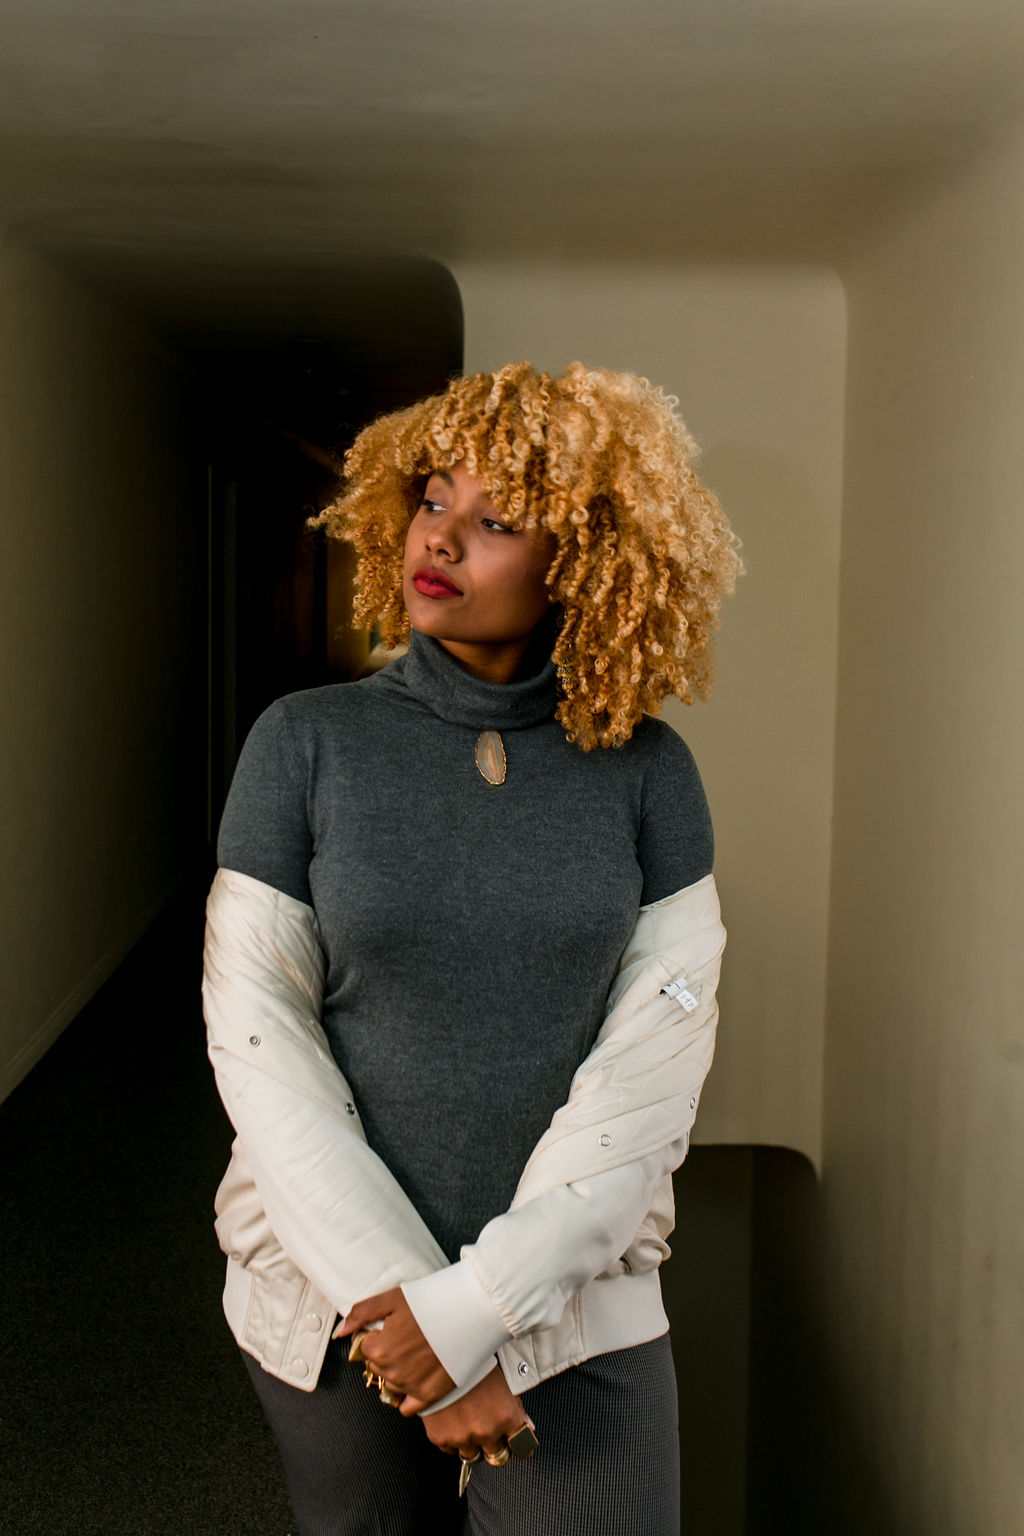 woman with blonde curly hair wearing a white bomber jacket